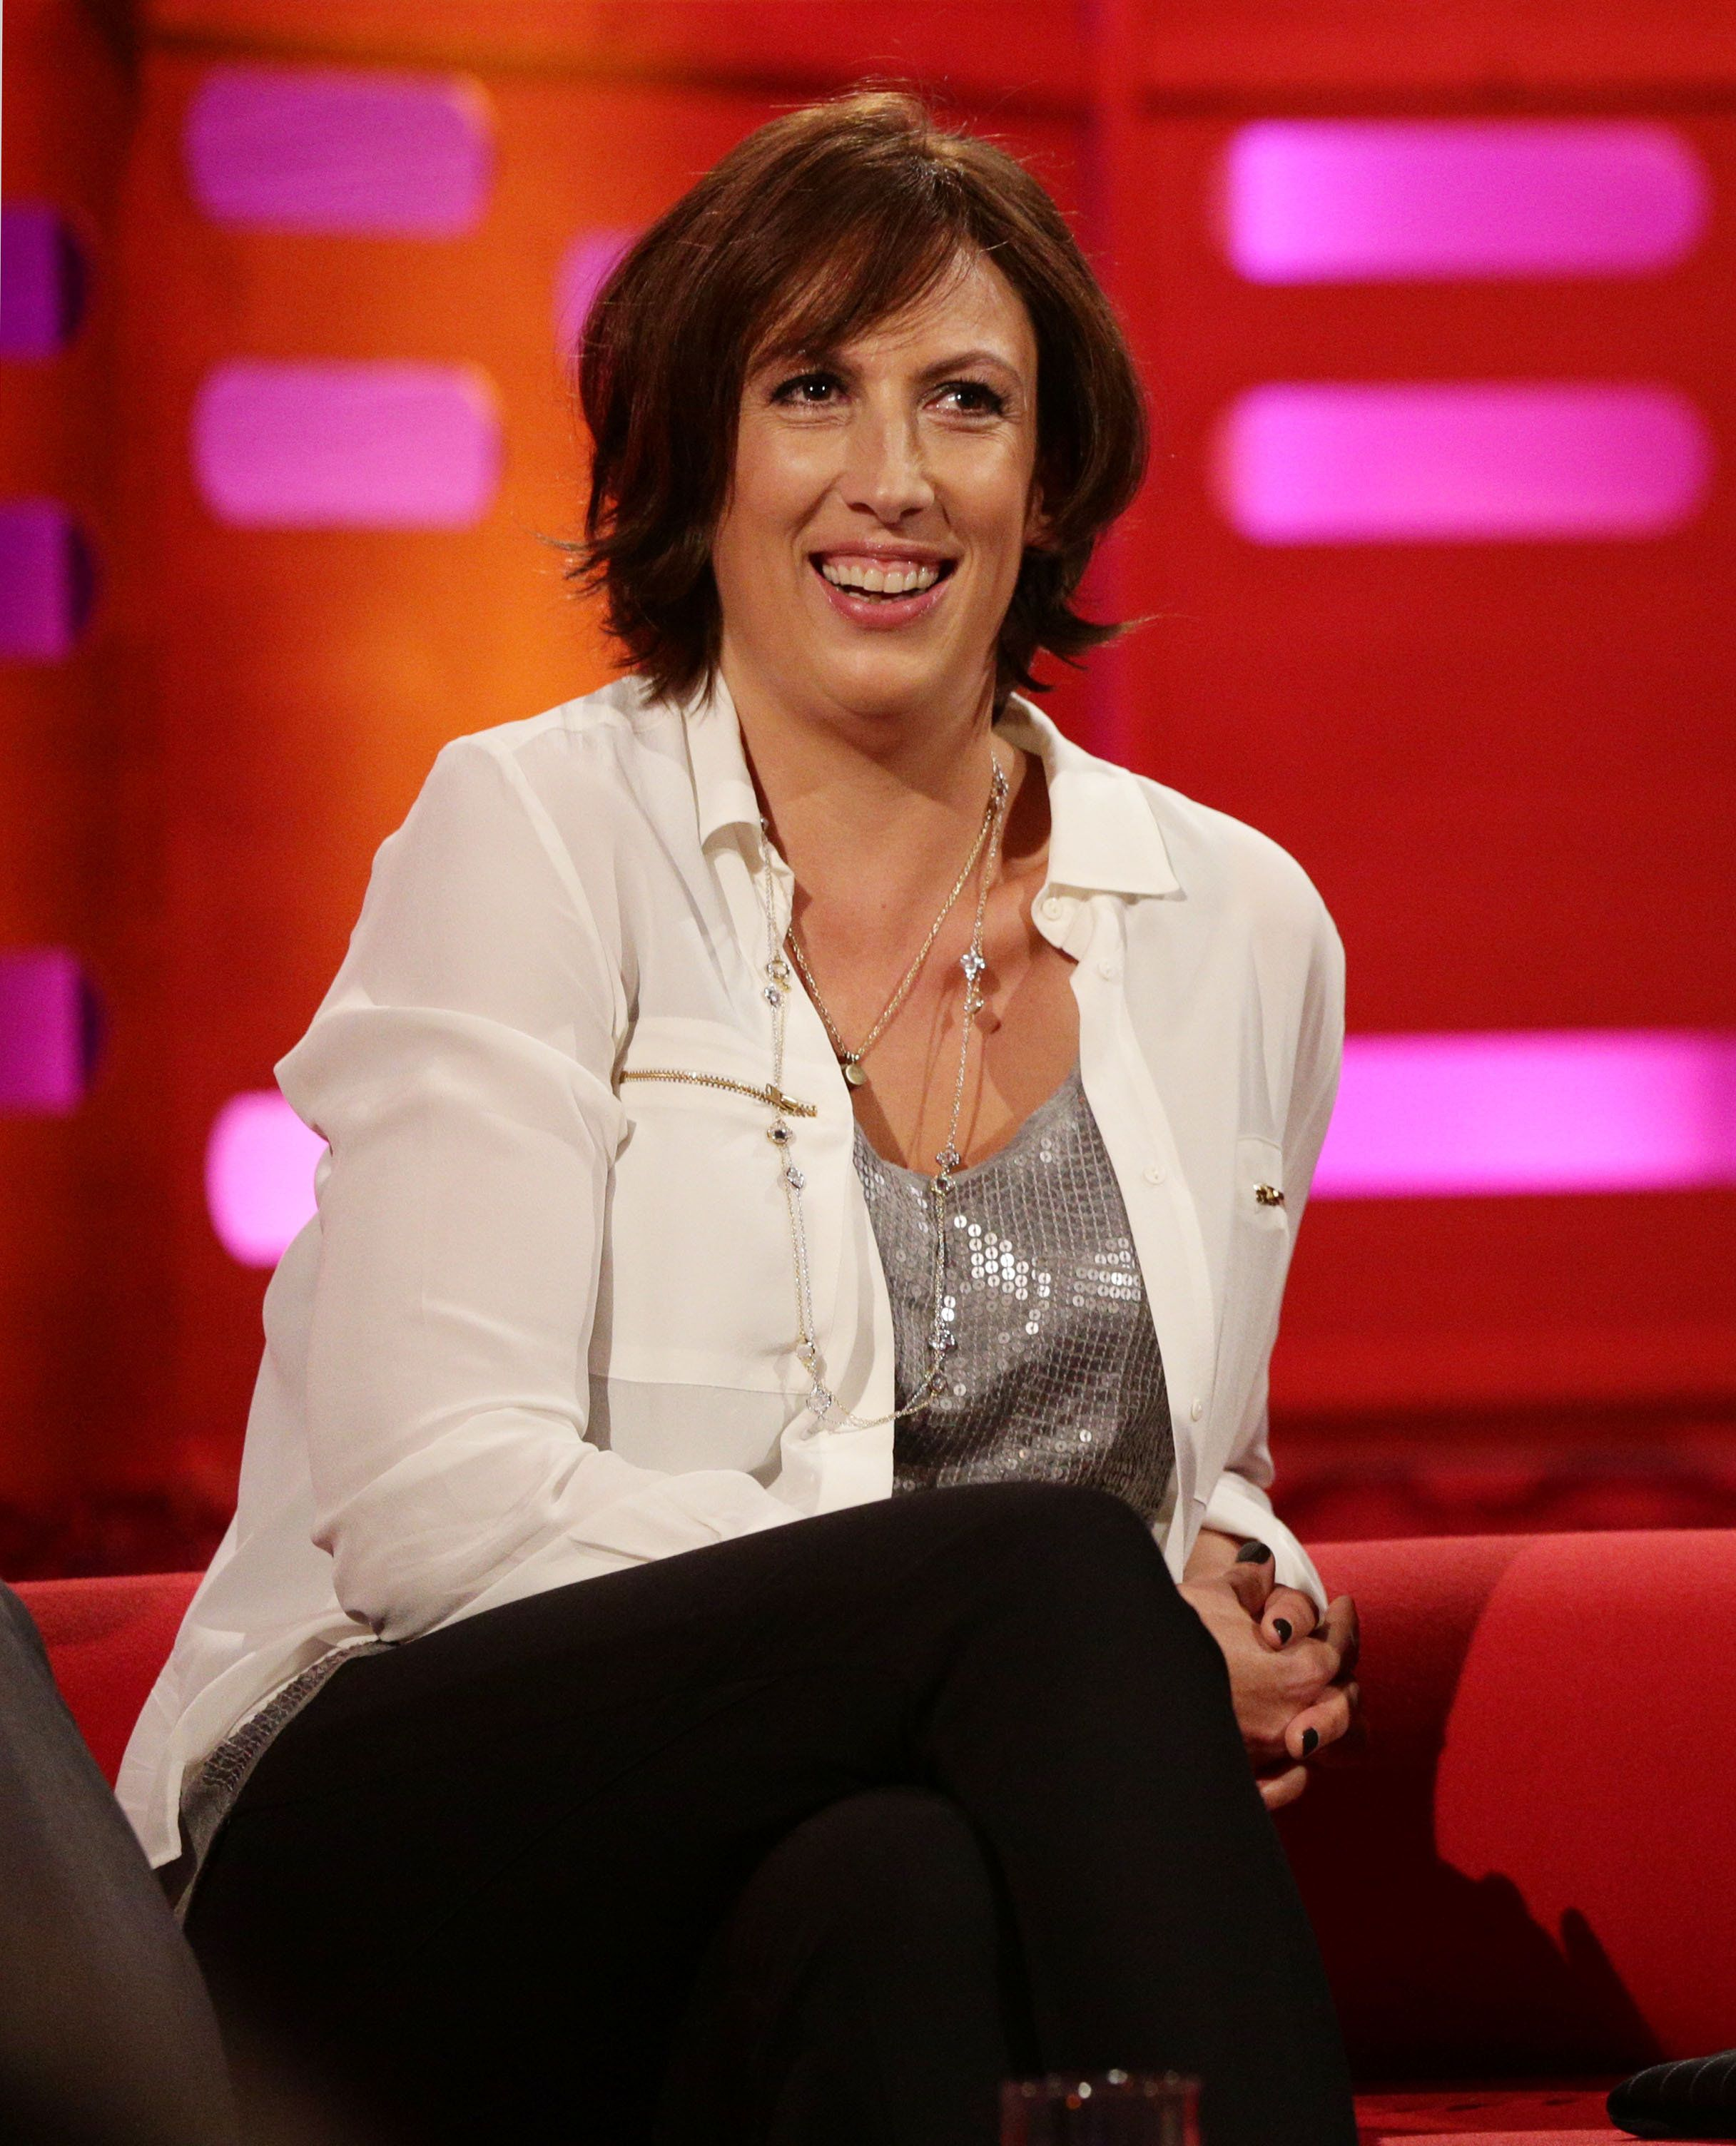 Miranda Hart Set To Return To TV Screens In A Gardening Show... With Her